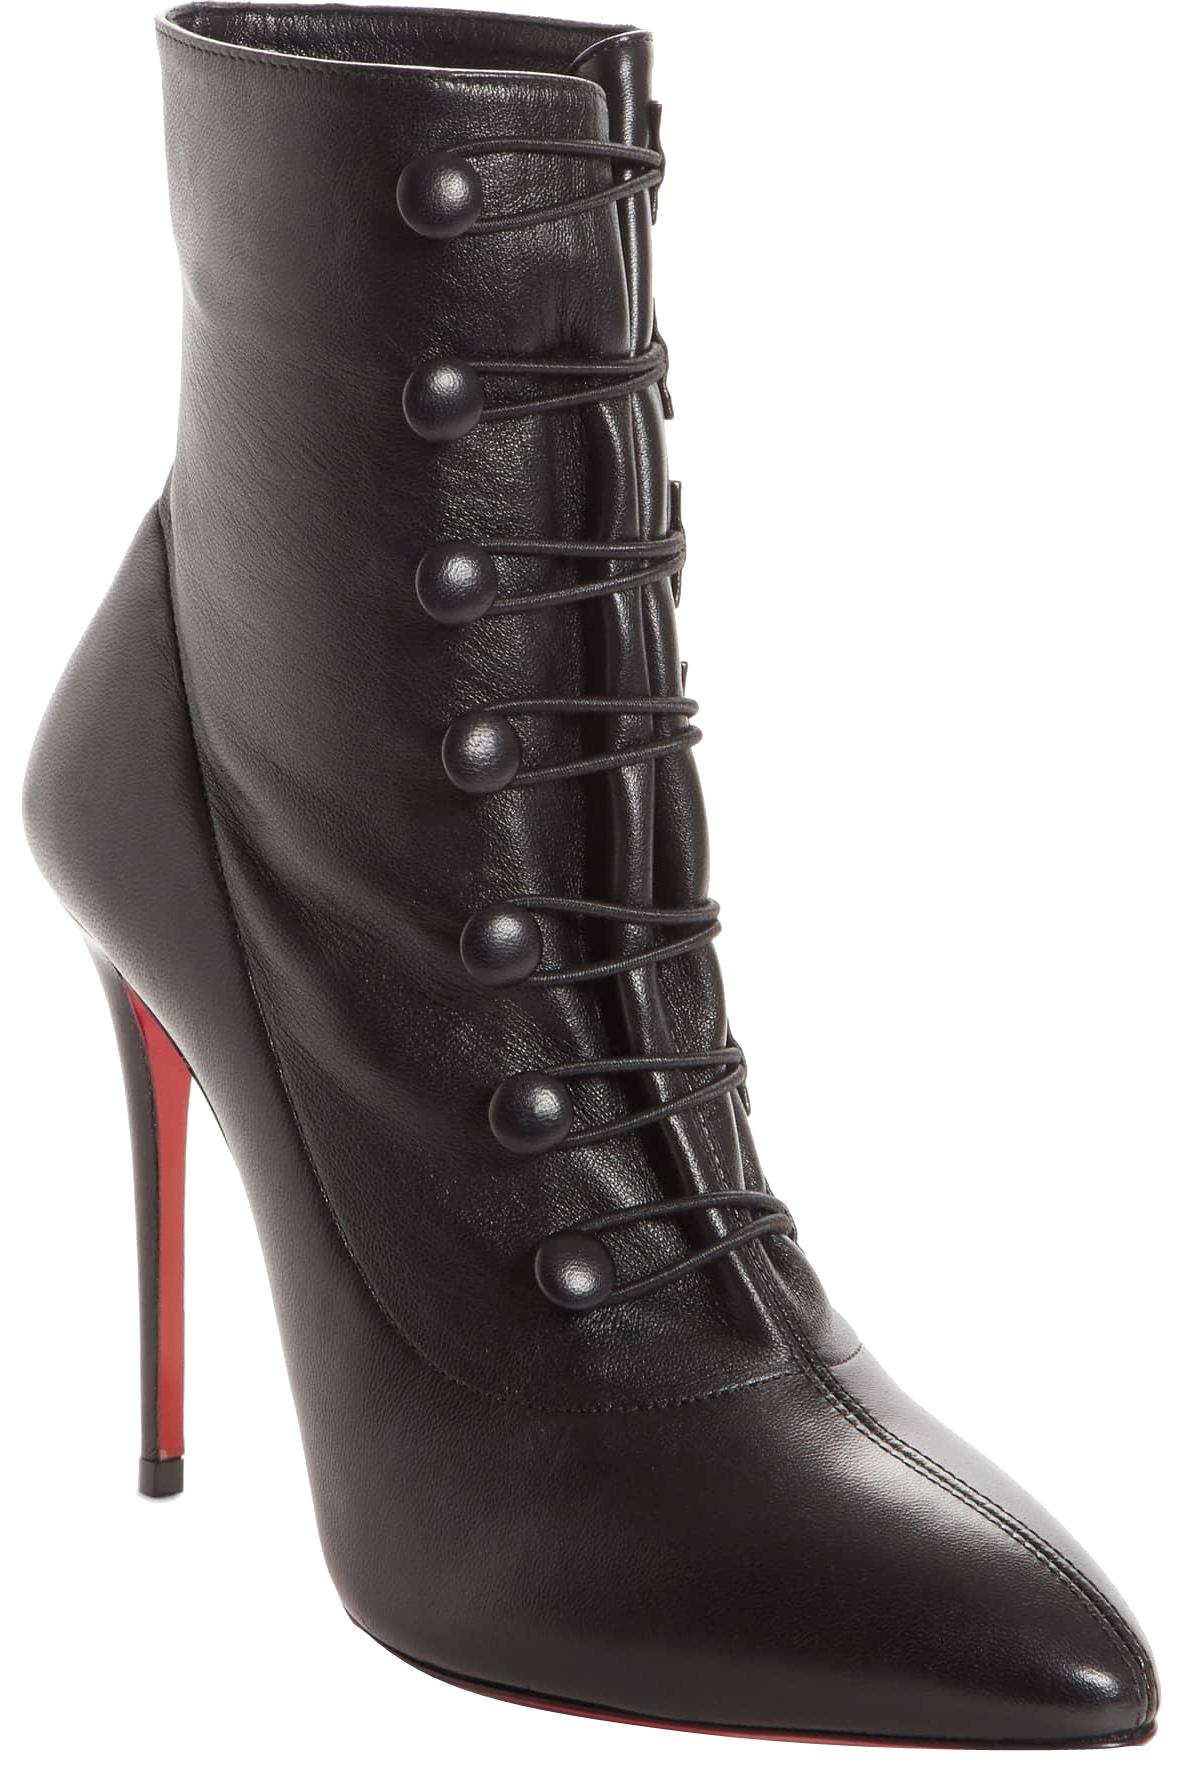 more photos a1c2f 92733 discount christian louboutin shoes dallas locations 275bc 35619